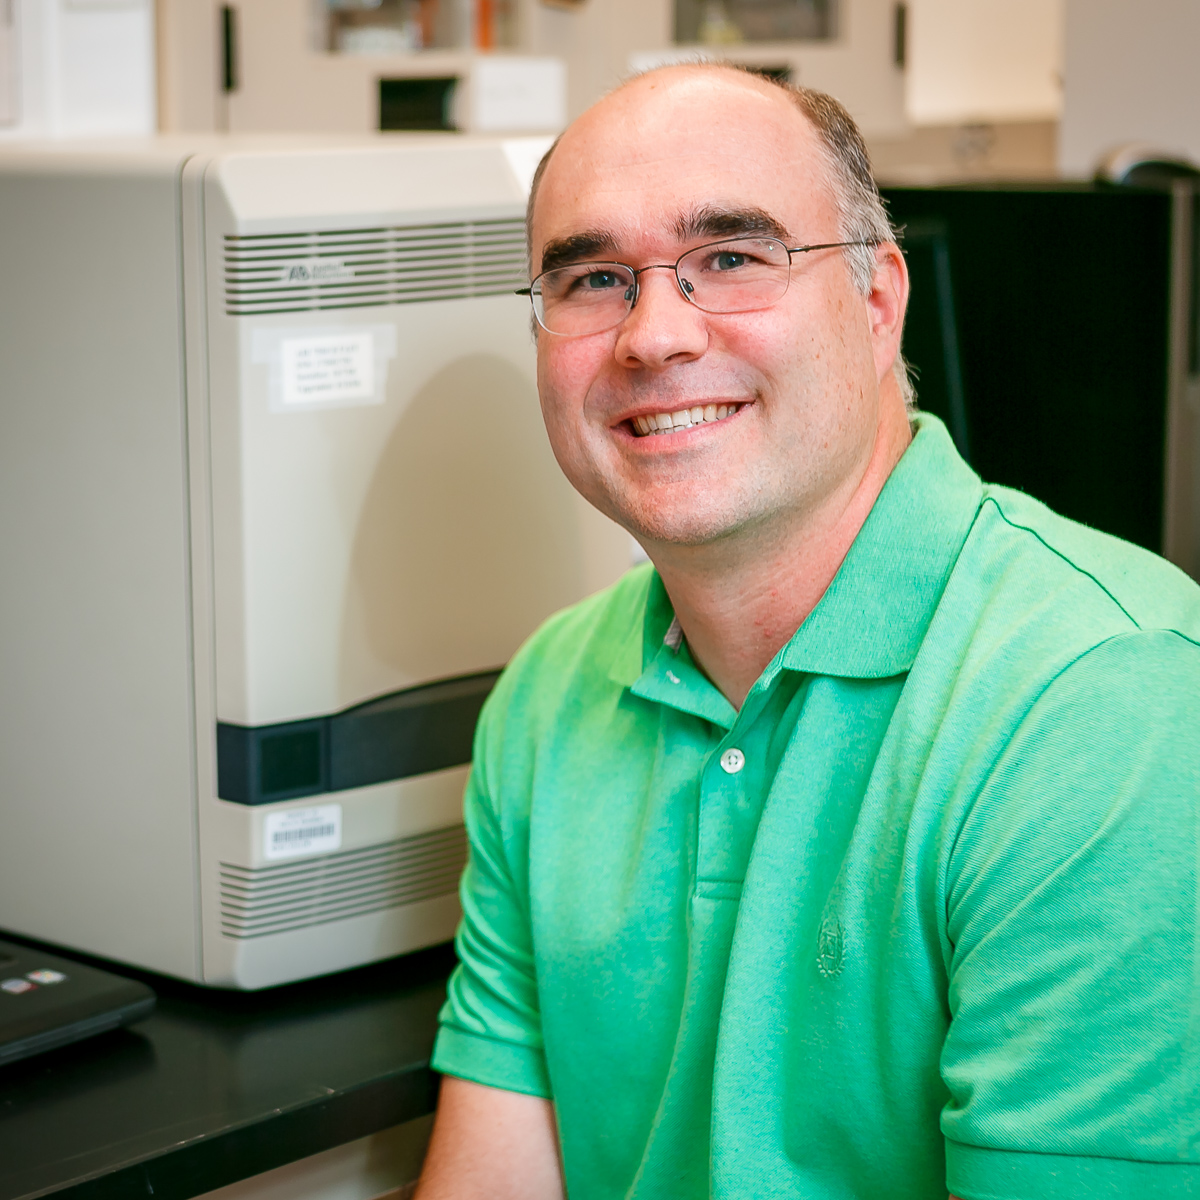 Dr. Patrick Bryant, Director of the Enteric Virology Laboratory